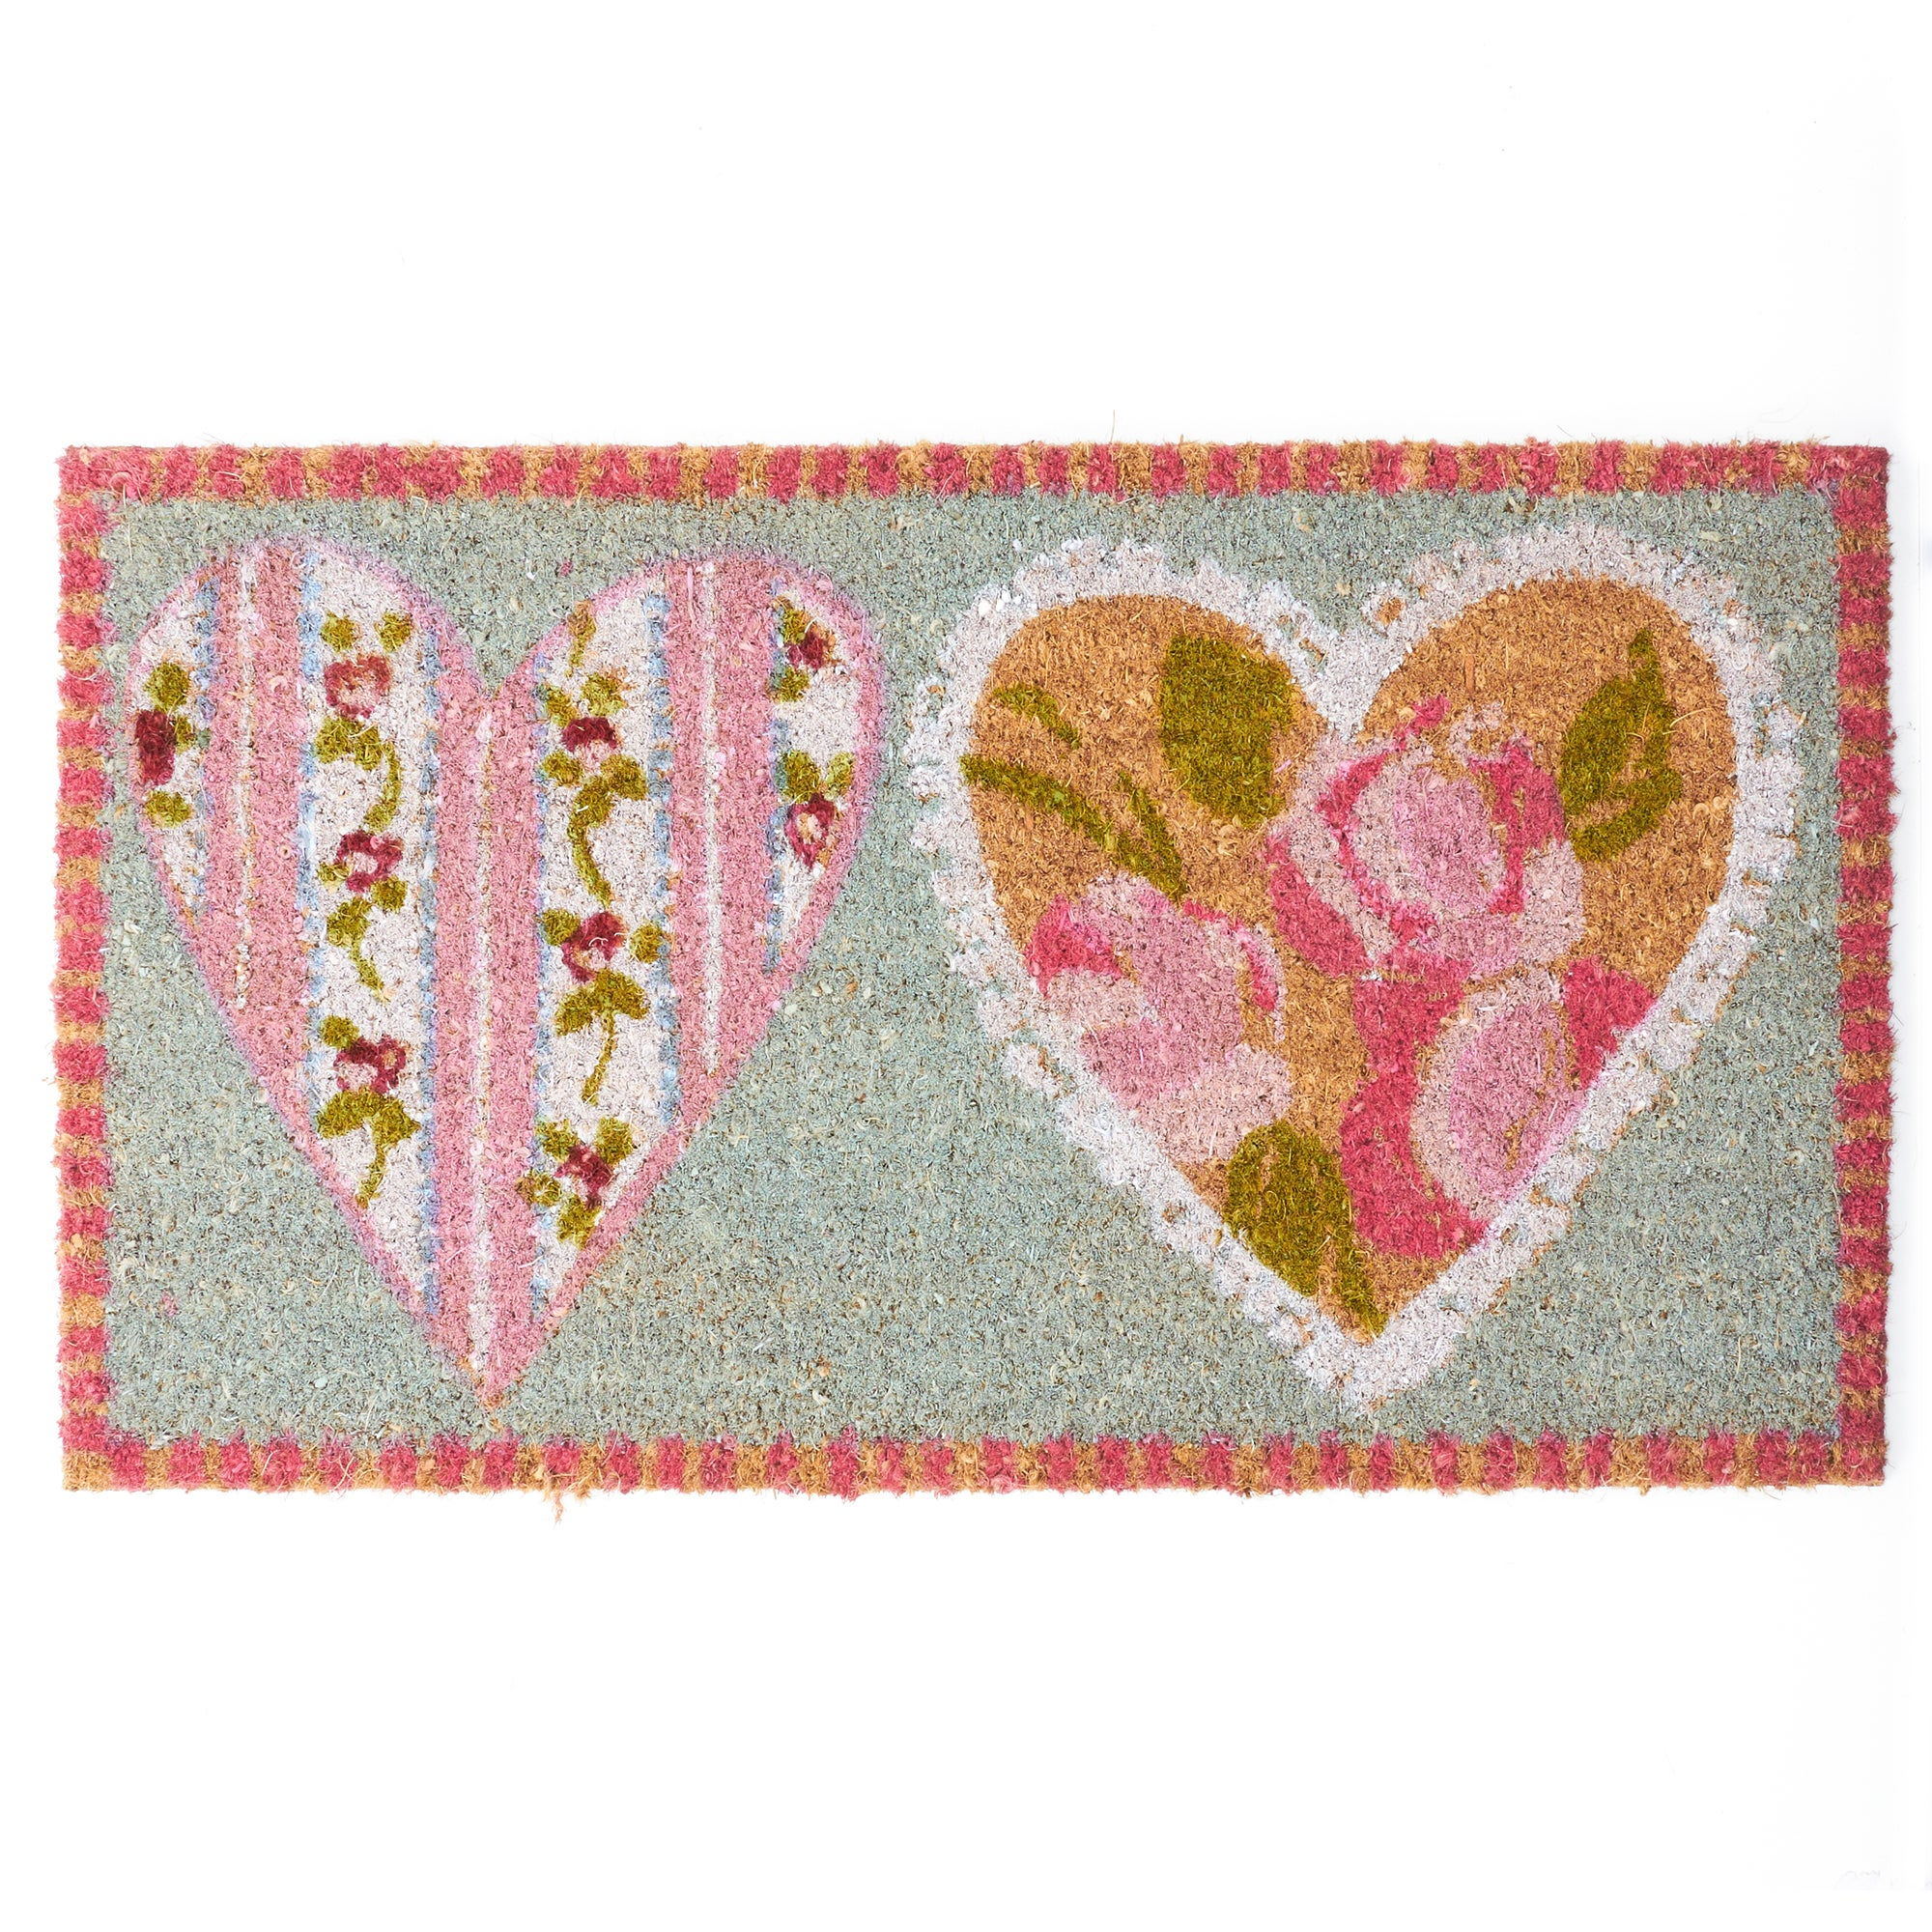 Rose and Ellis Appleby Collection Coir Doormat